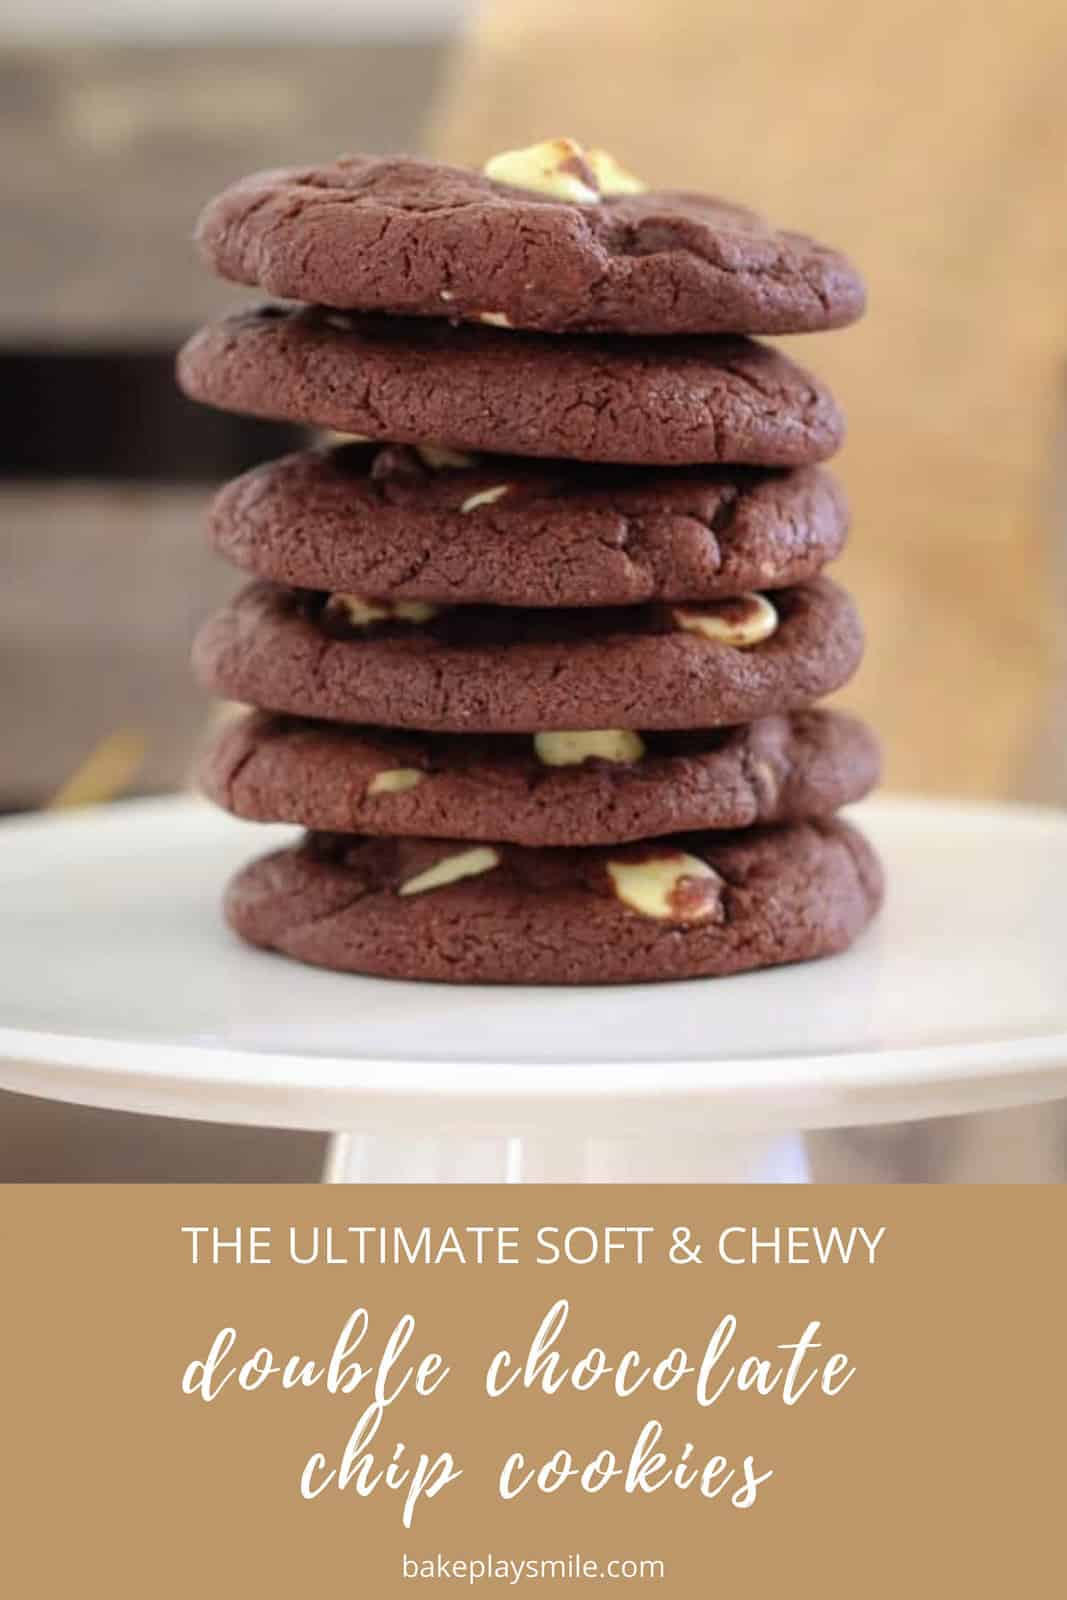 A stack of dark chocolate chip cookies with white chocolate chips on a white cake stand.